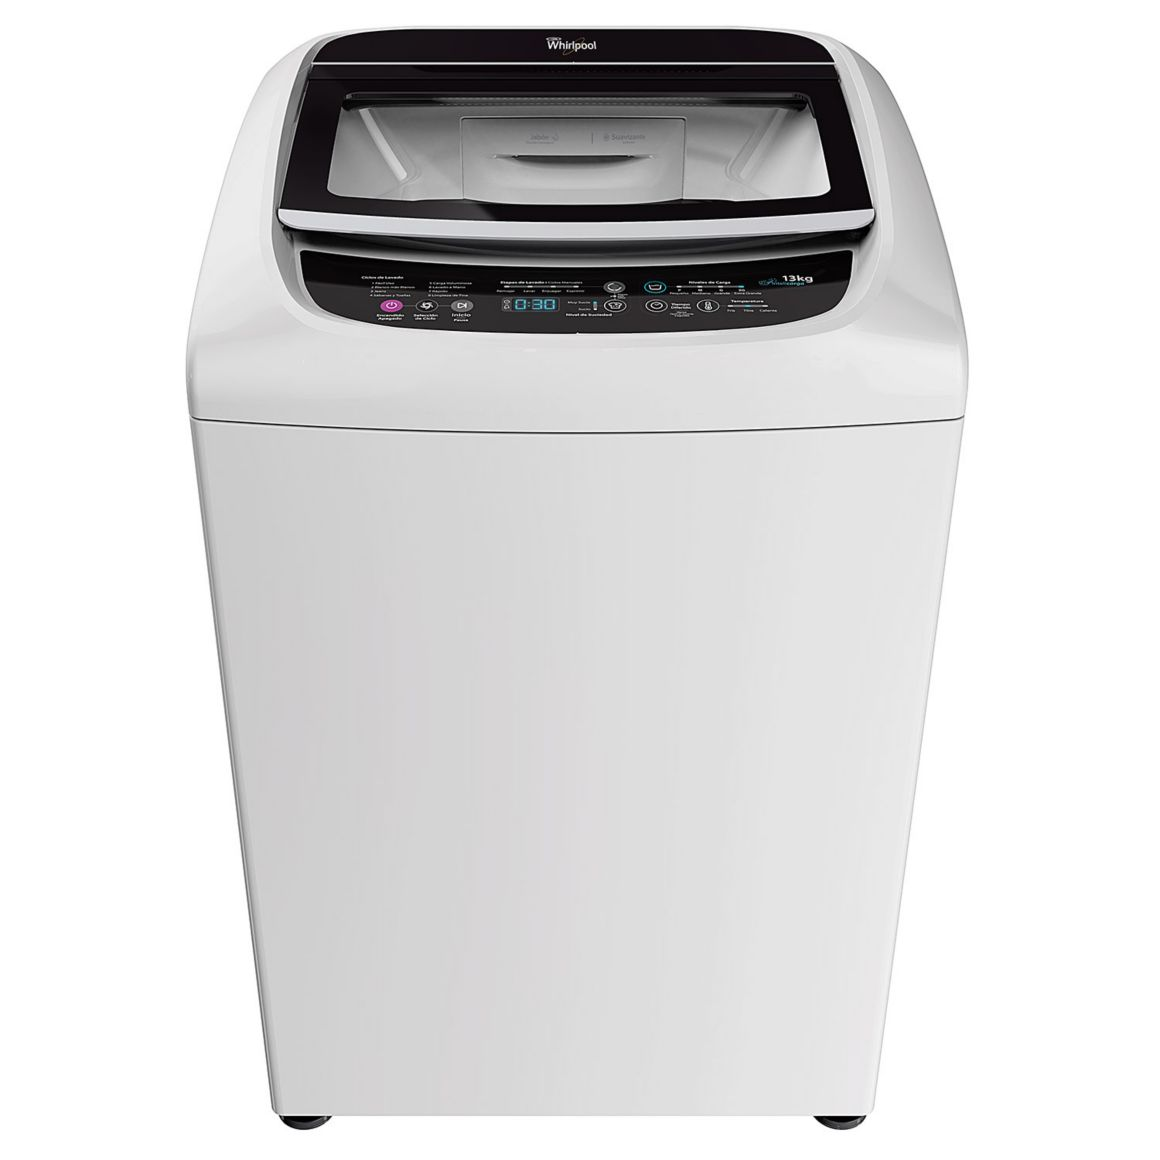 Lavadora de 13 Kg Turbo Power de Whirlpool color blanco